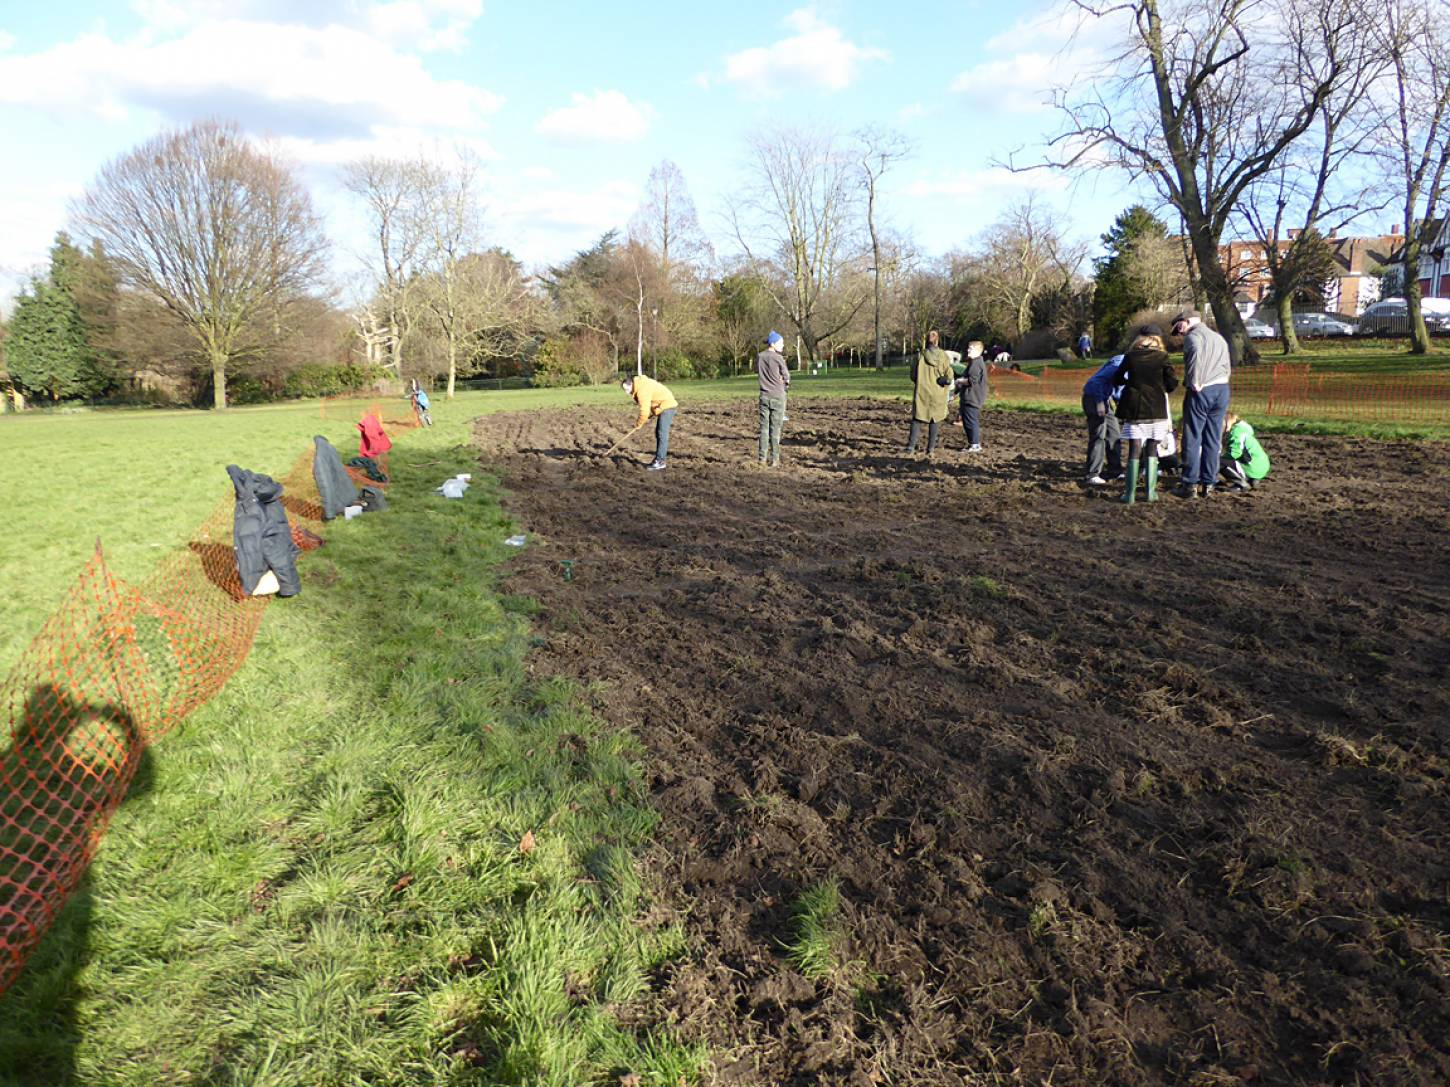 wheat goes in after harrowing on <a href='https://www.friendsofruskinpark.org.uk/' target='_blank'>Ruskin Park</a> - 4:14pm&nbsp;17<sup>th</sup>&nbsp;Feb.&nbsp;'18